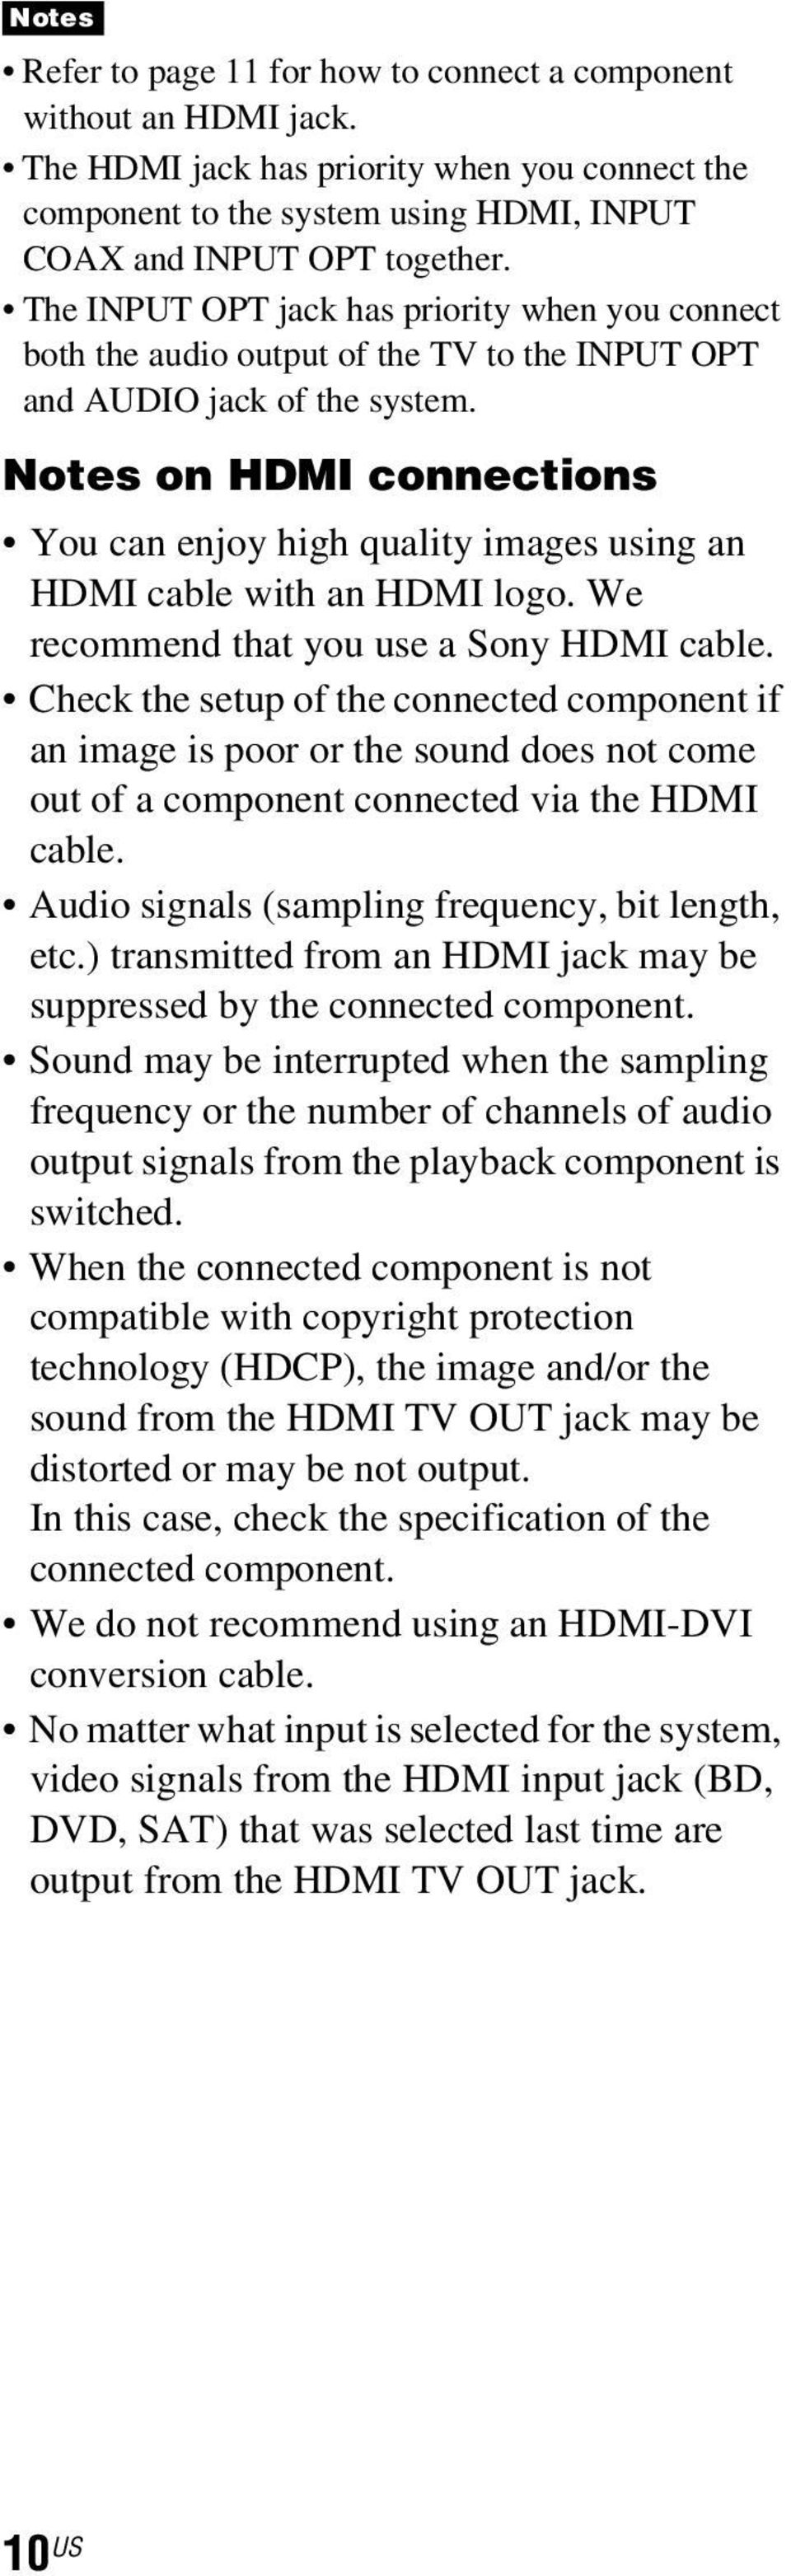 Notes on HDMI connections You can enjoy high quality images using an HDMI cable with an HDMI logo. We recommend that you use a Sony HDMI cable.